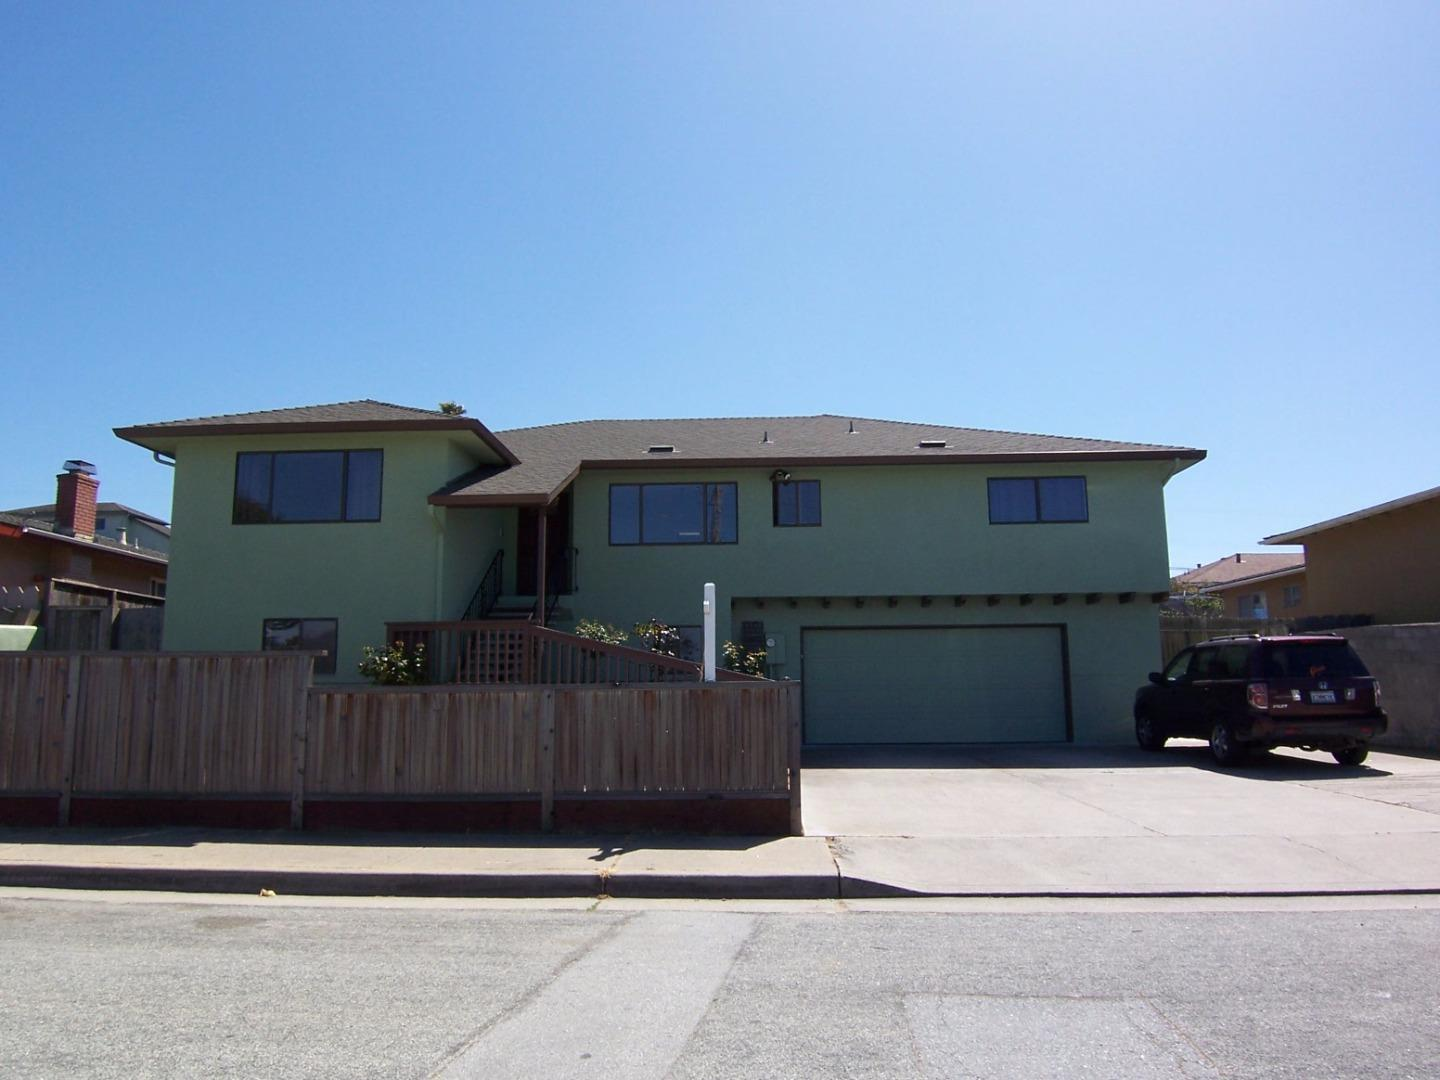 1440x956 src 23 Local Seaside/Former Fort Ord/Sand City, CA Real Estate Listings and Homes  for Sale   BHGRE